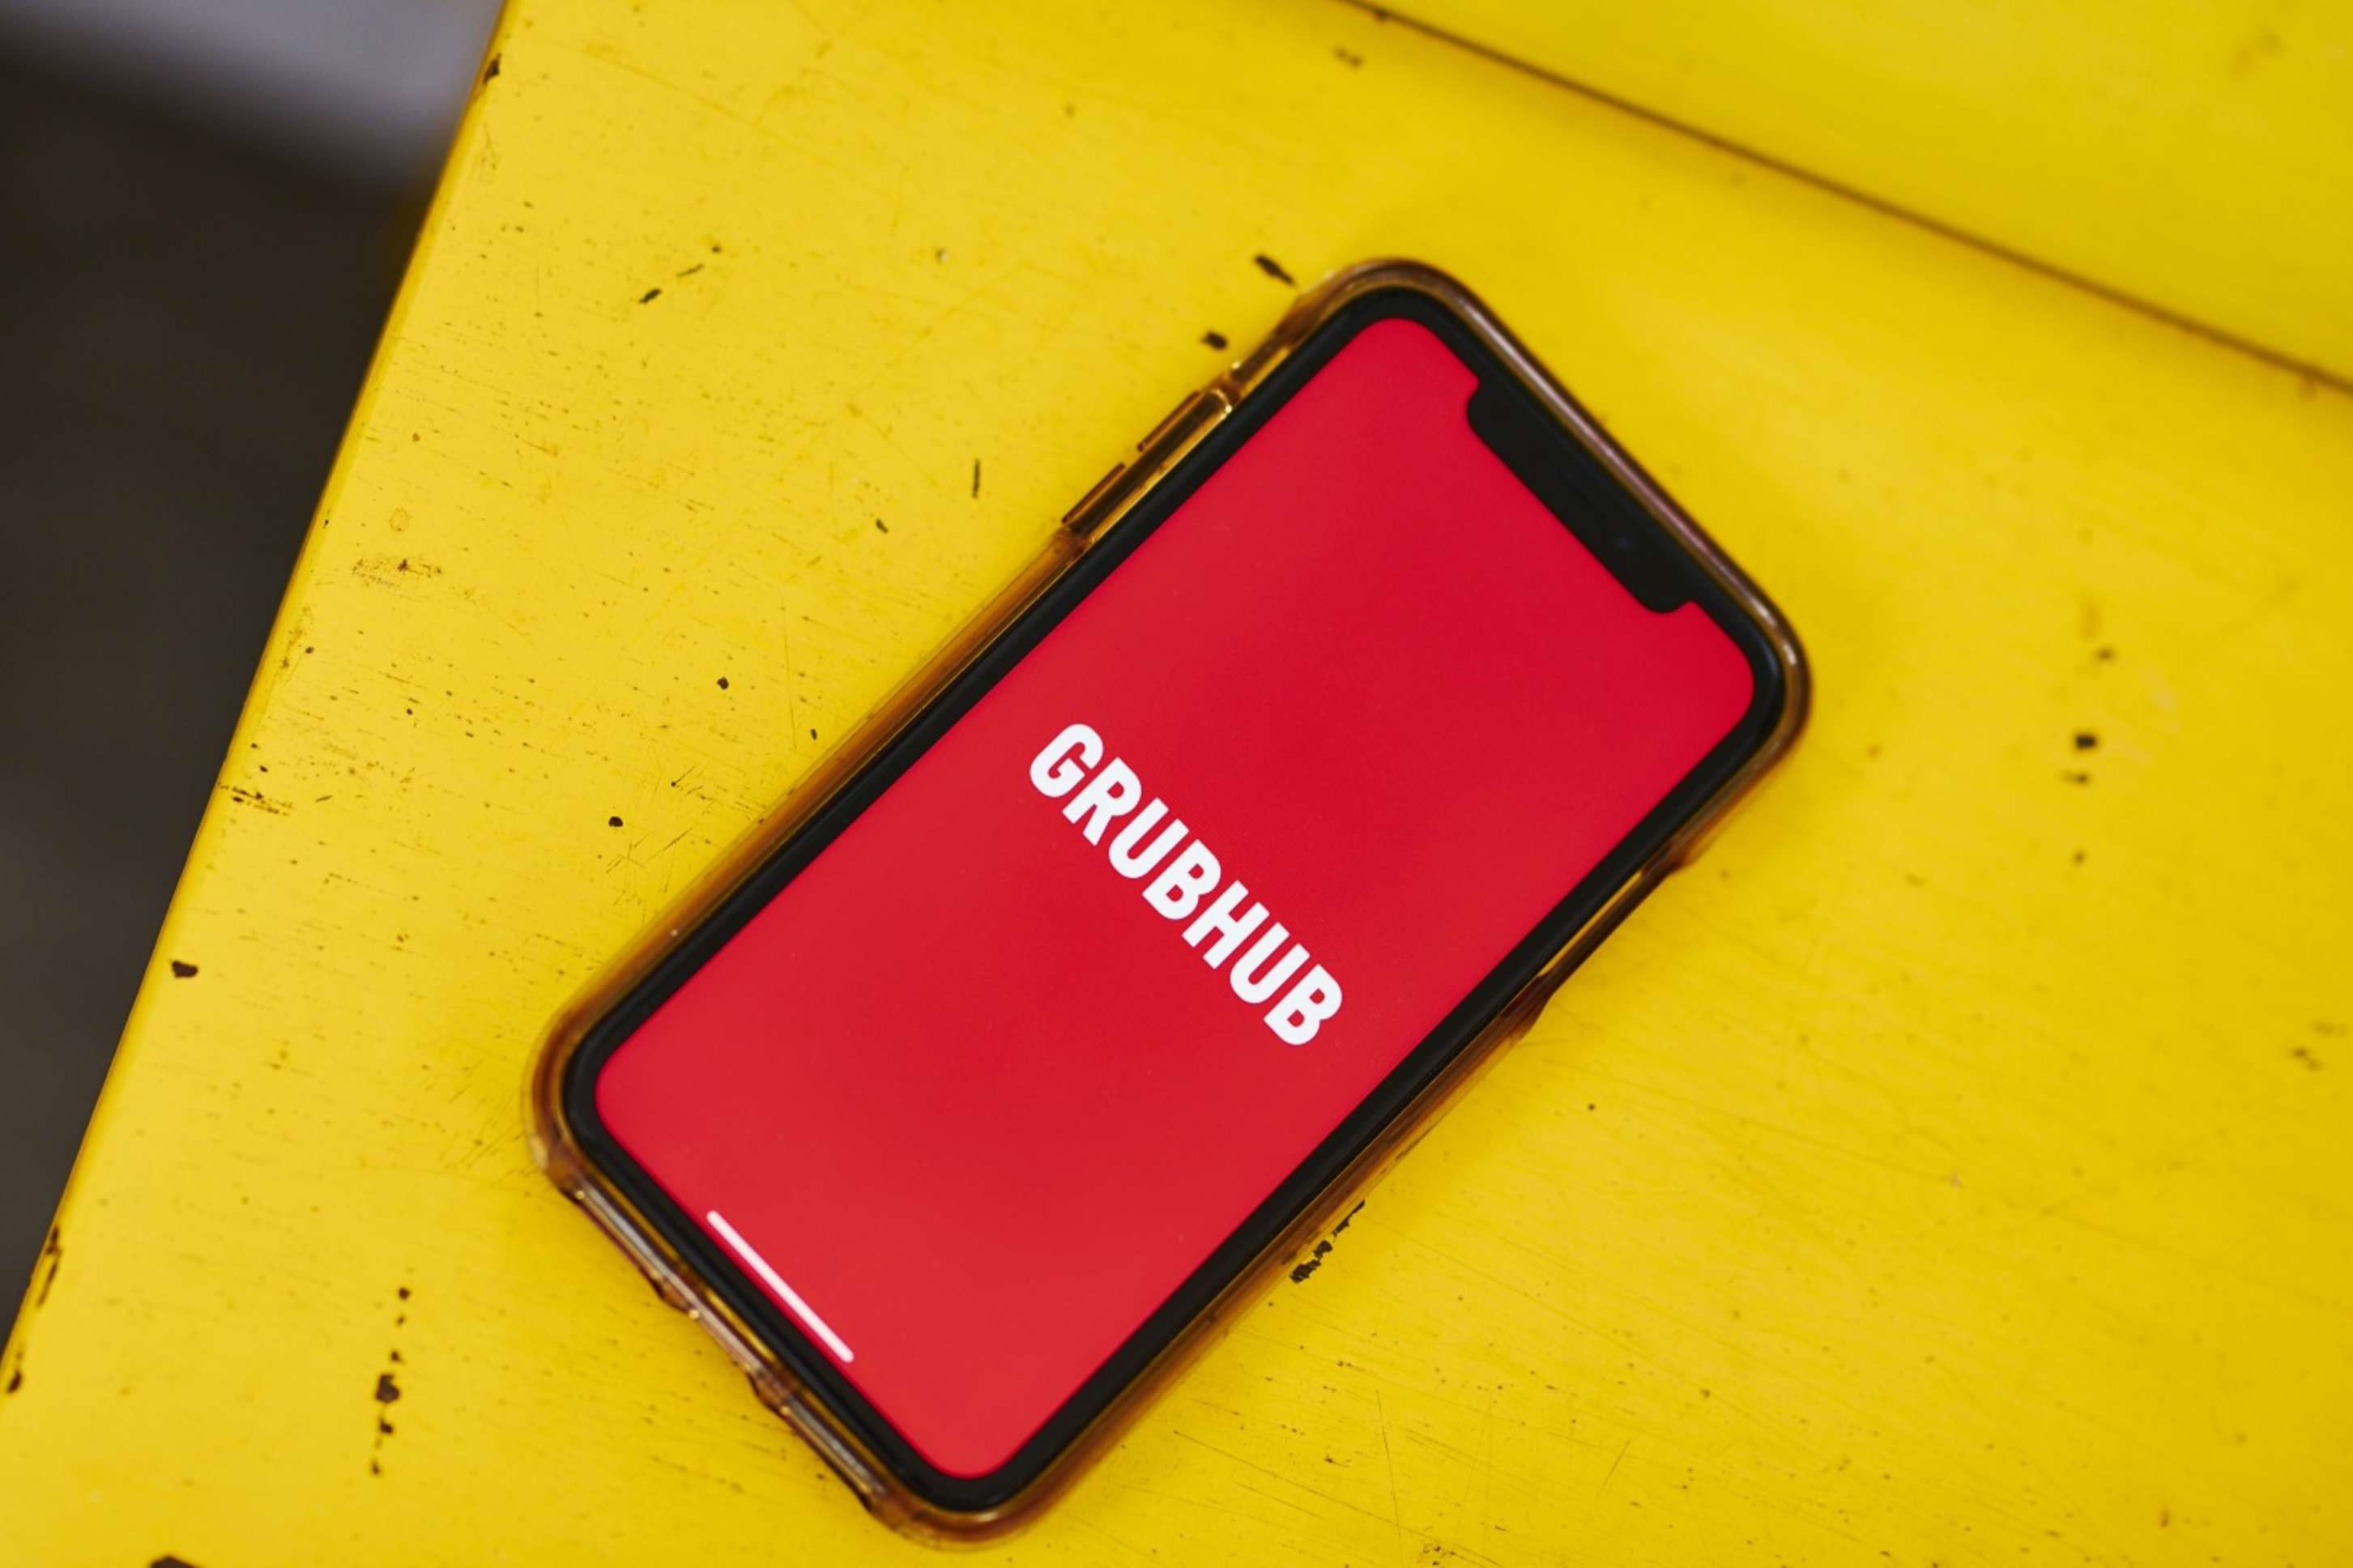 Just Eat Takeaway to buy Grubhub for $7.3 billion to enter the U.S. market